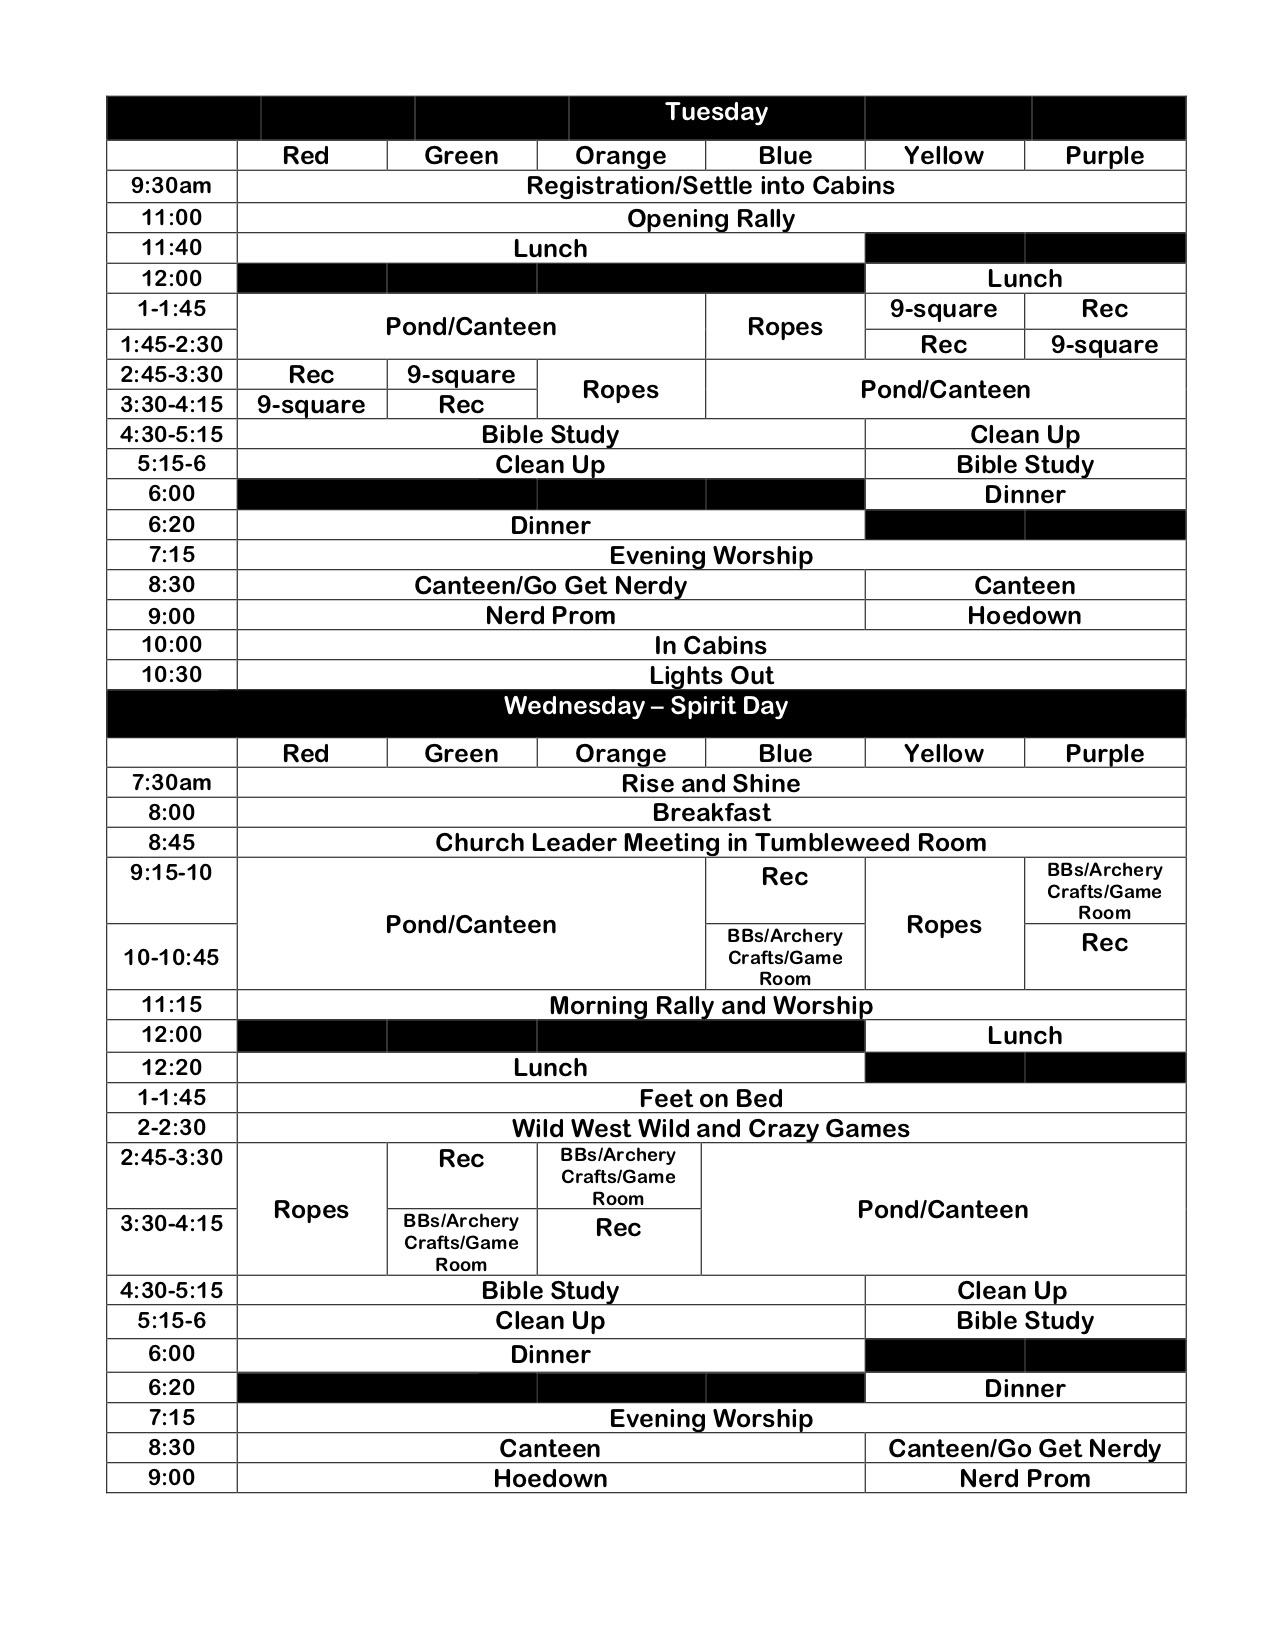 Branded PT 2019 6 color schedule Pg 1.jpg